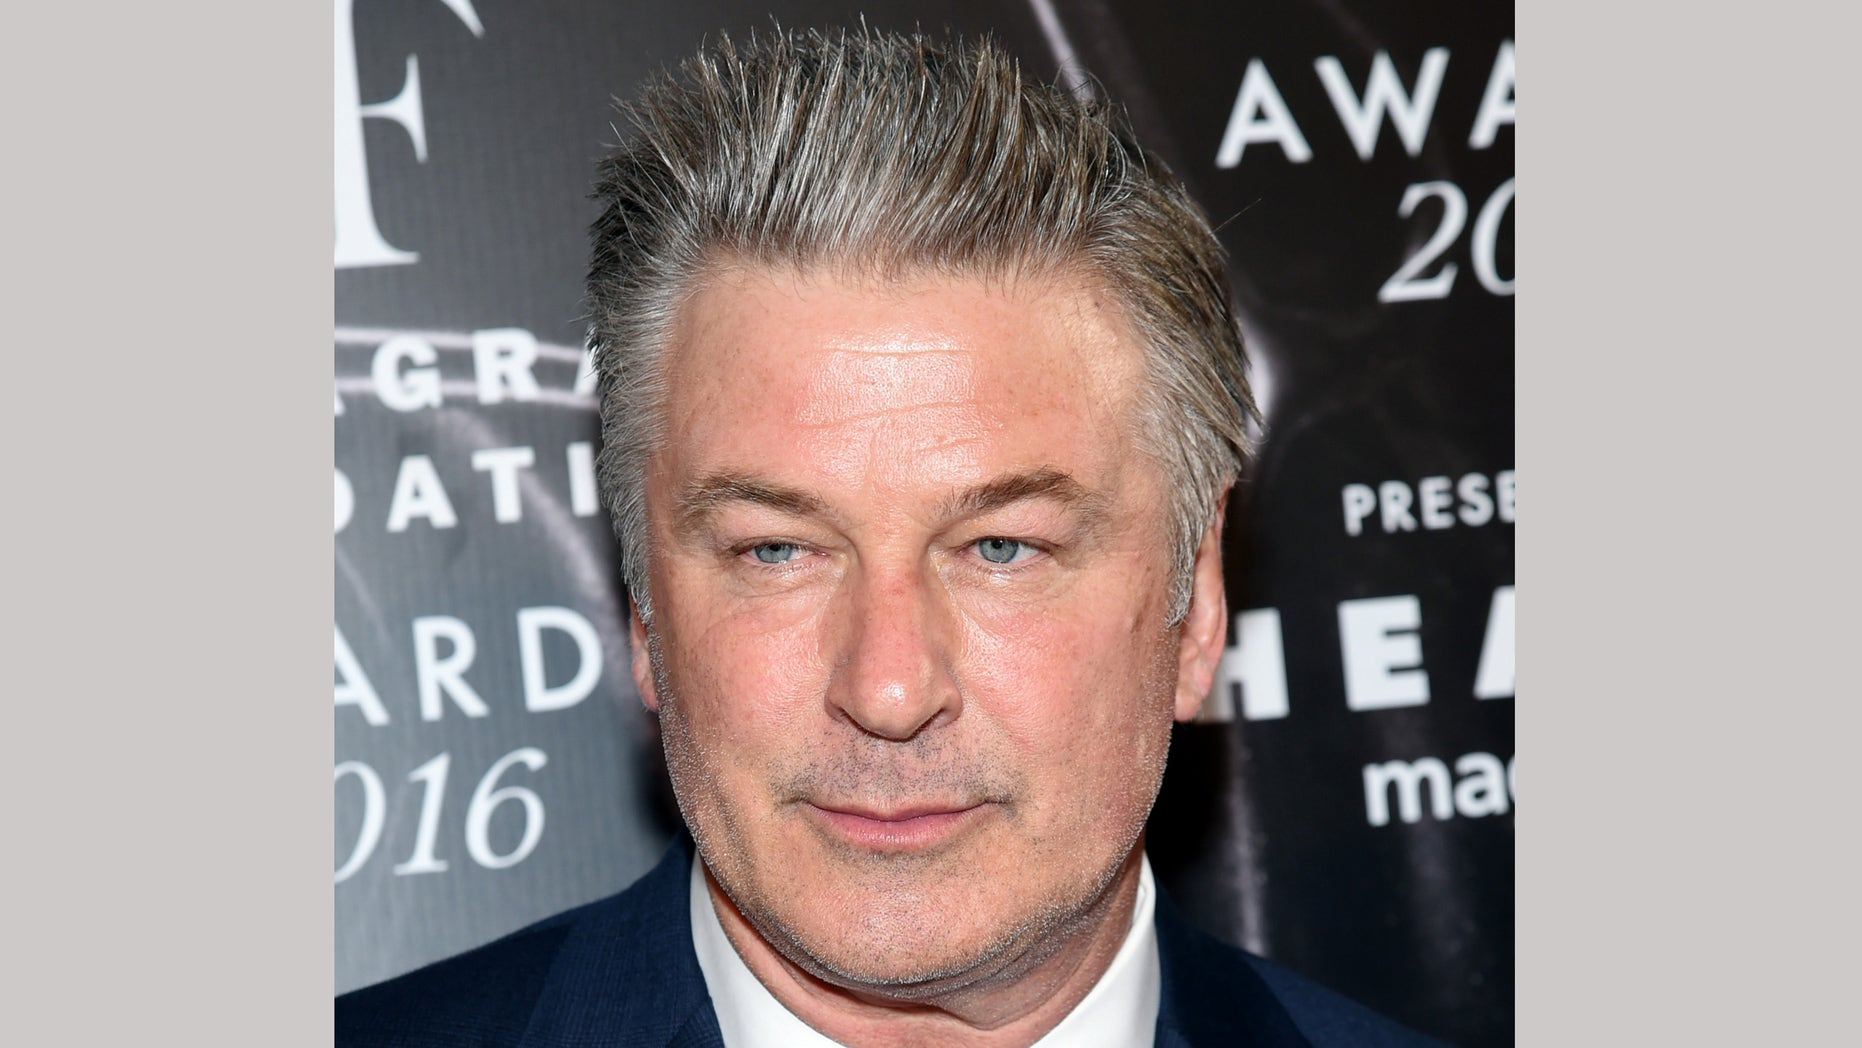 """FILE - In this June 7, 2016 file photo, Alec Baldwin attends the 2016 Fragrance Foundation Awards in New York. """"Saturday Night Live"""" has chosen Alec Baldwin to impersonate GOP presidential nominee Donald Trump."""